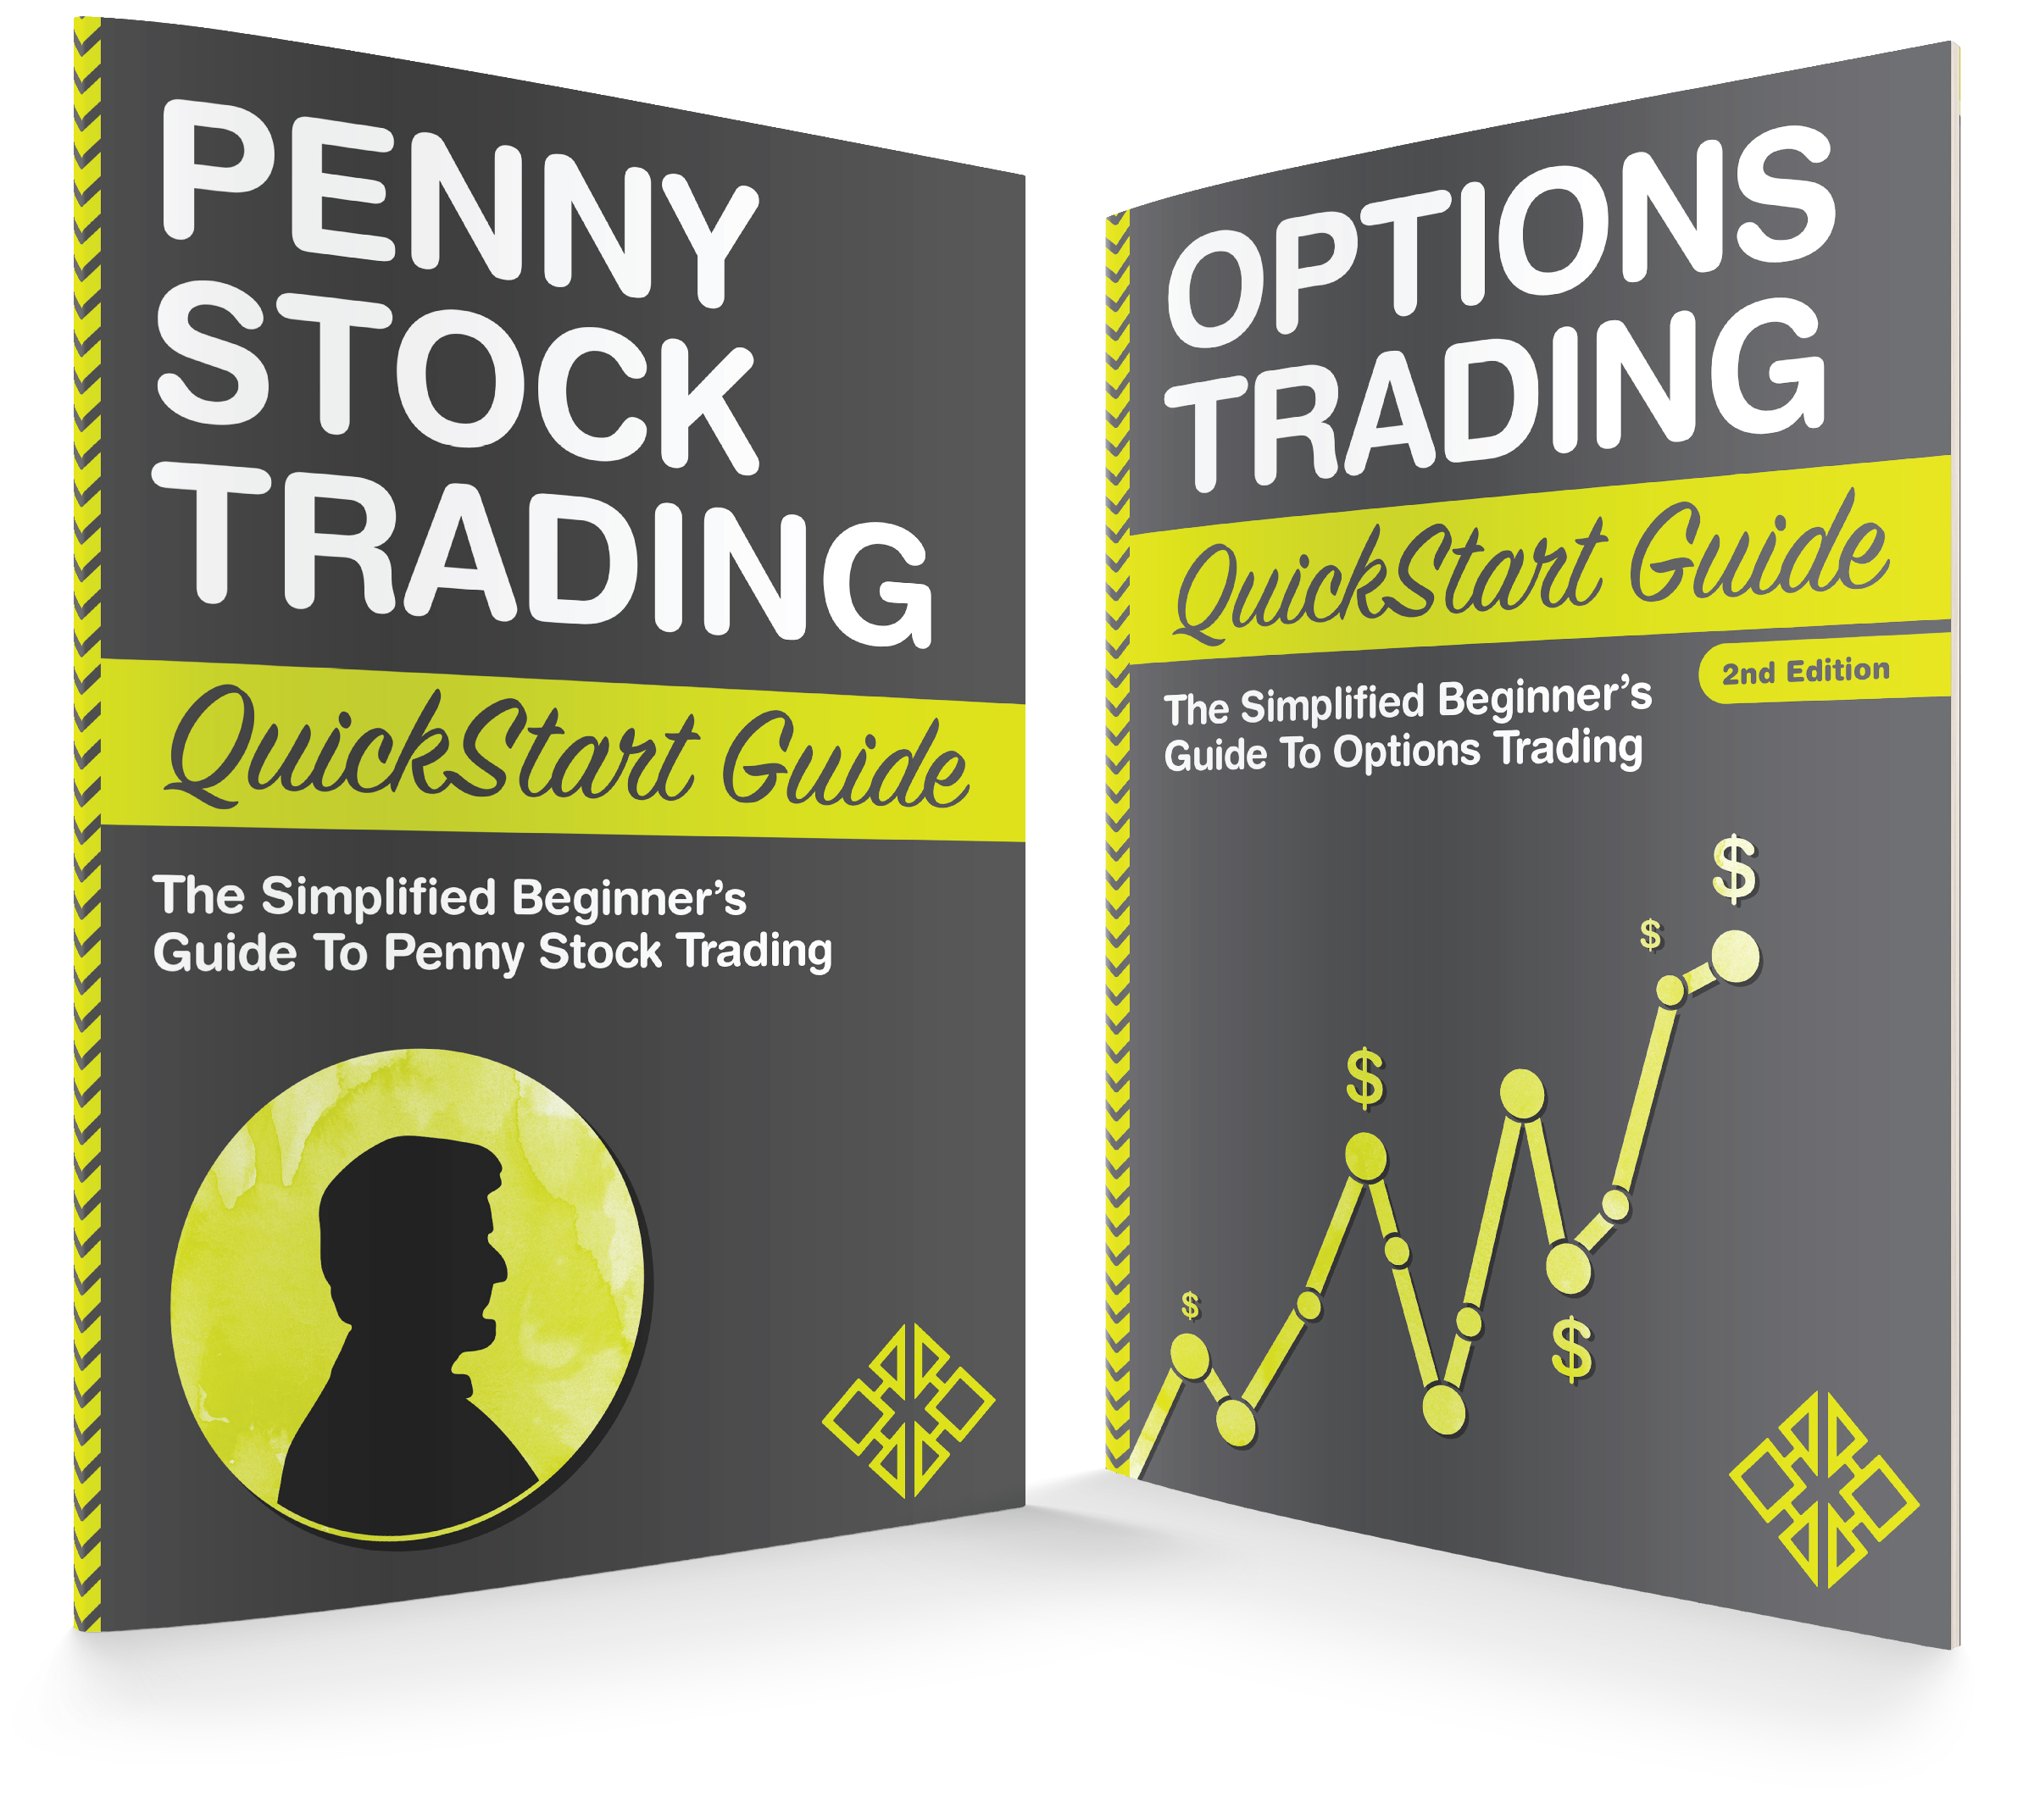 Good book on options trading